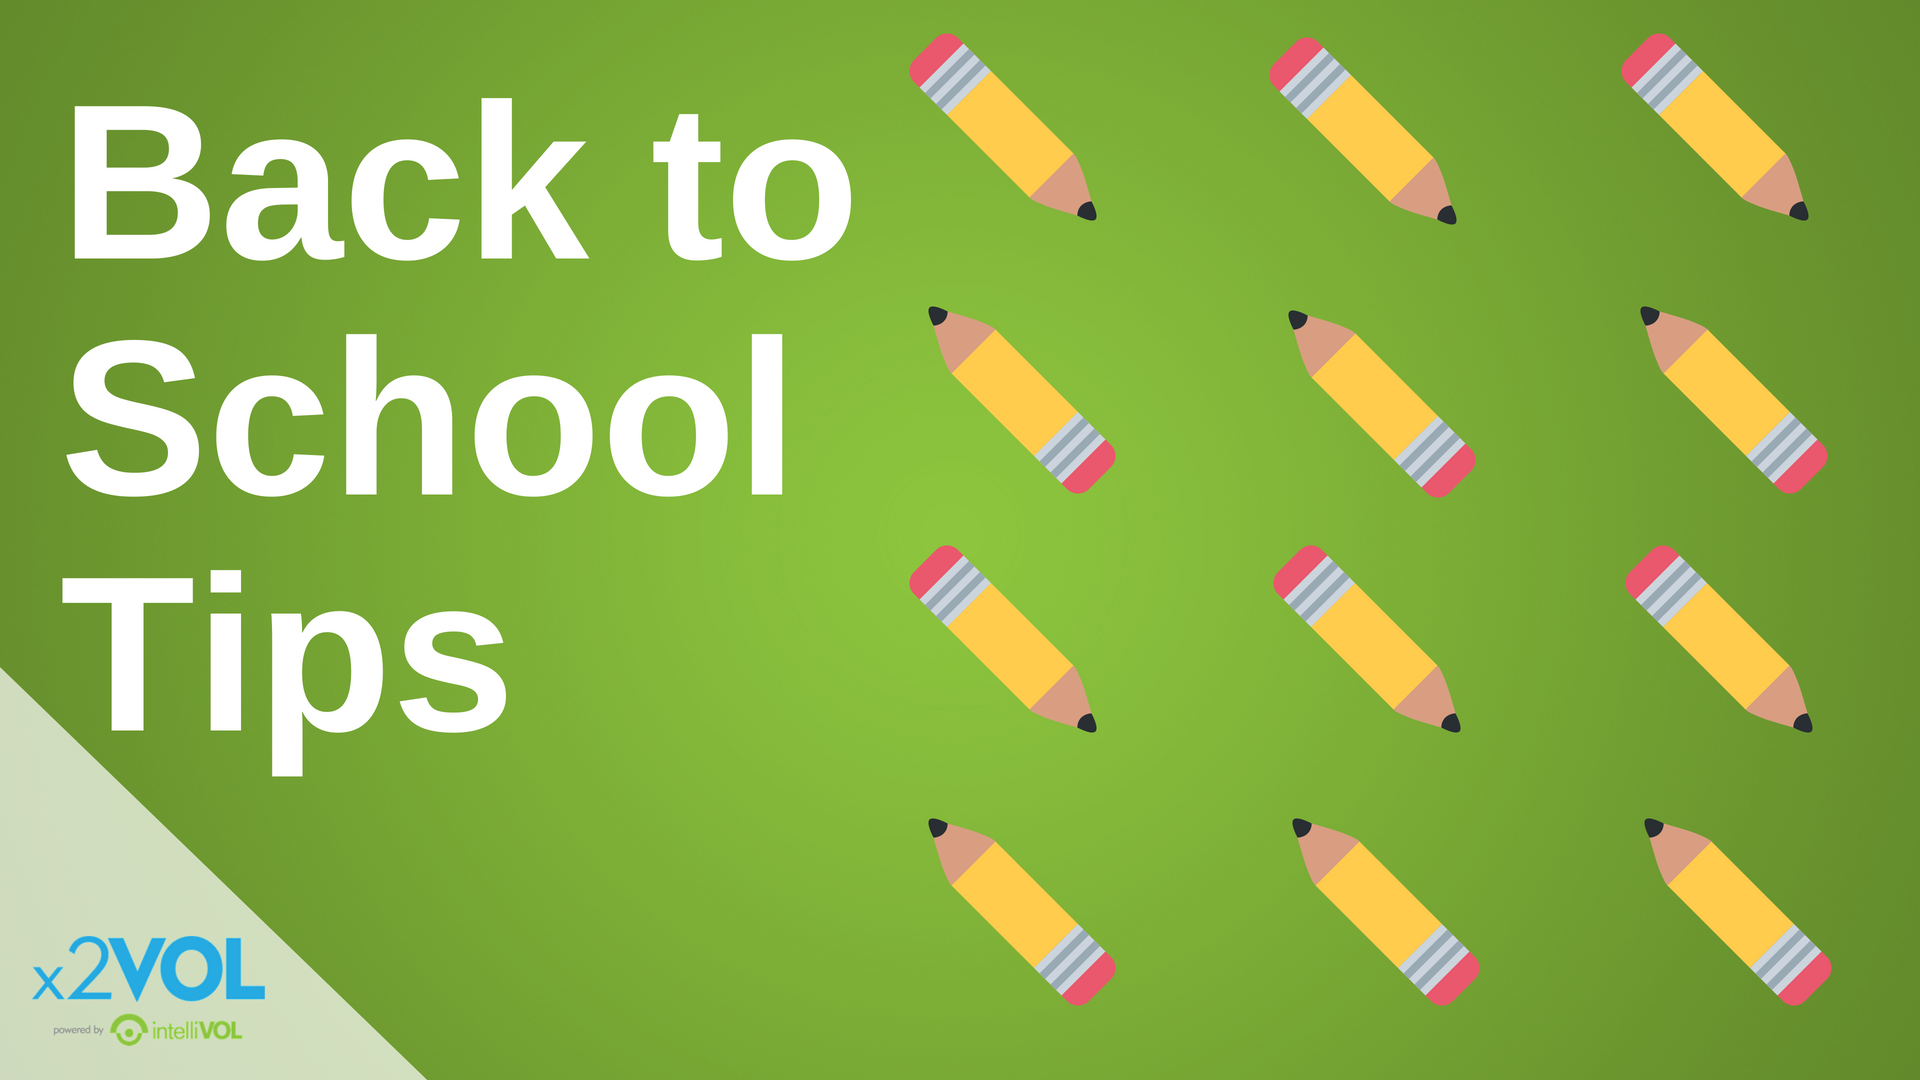 Back to School Tips and Tricks for Students